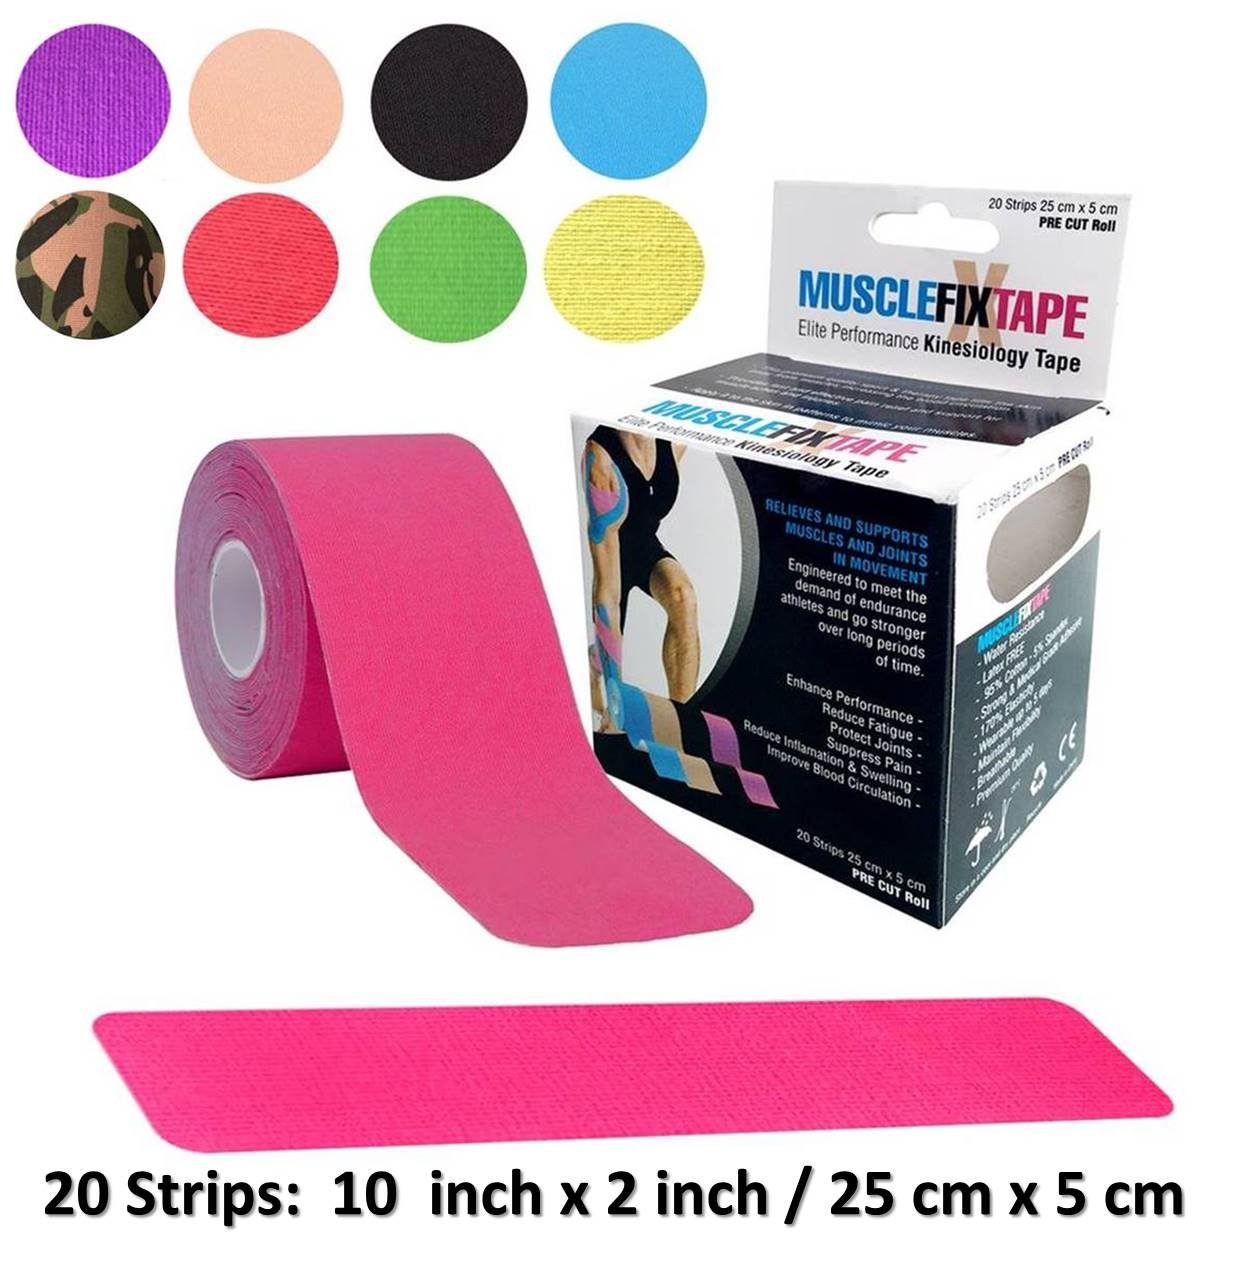 Pink Kinesology tape Roll | ktape ktapes kttape kttapes k-tape kt-tape kt-tapes | tonal dysfunction torticollis post-surgical scar management diastasis recti impingement syndrome myofascial mma ac rib